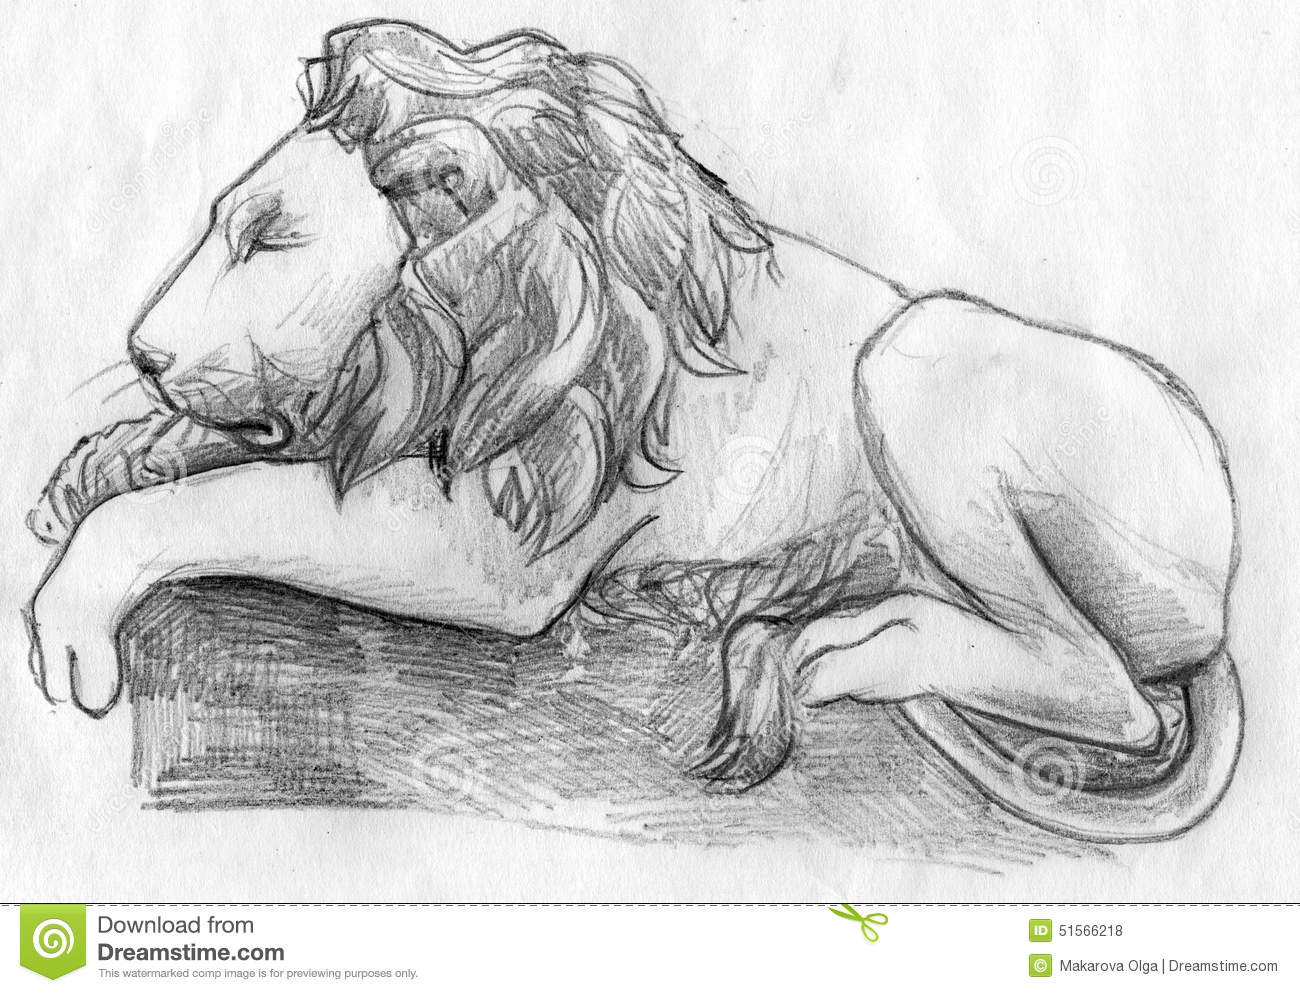 Hand drawn pencil sketch of a lion sleeping in the zoo